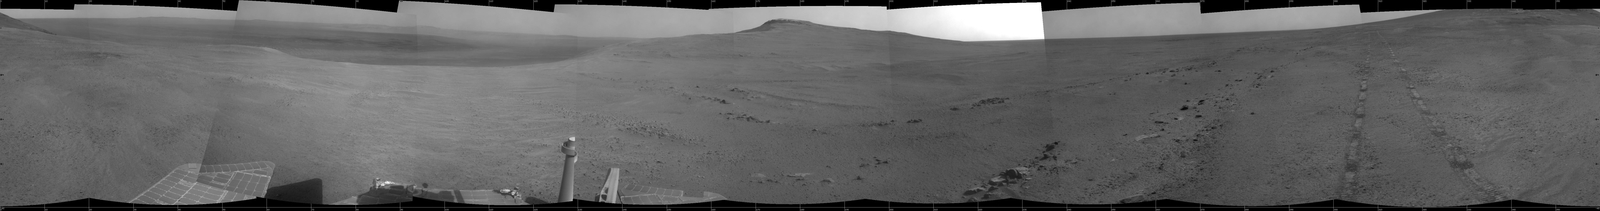 Crater Rim and Plain at Head of 'Perseverance Valley,' Mars